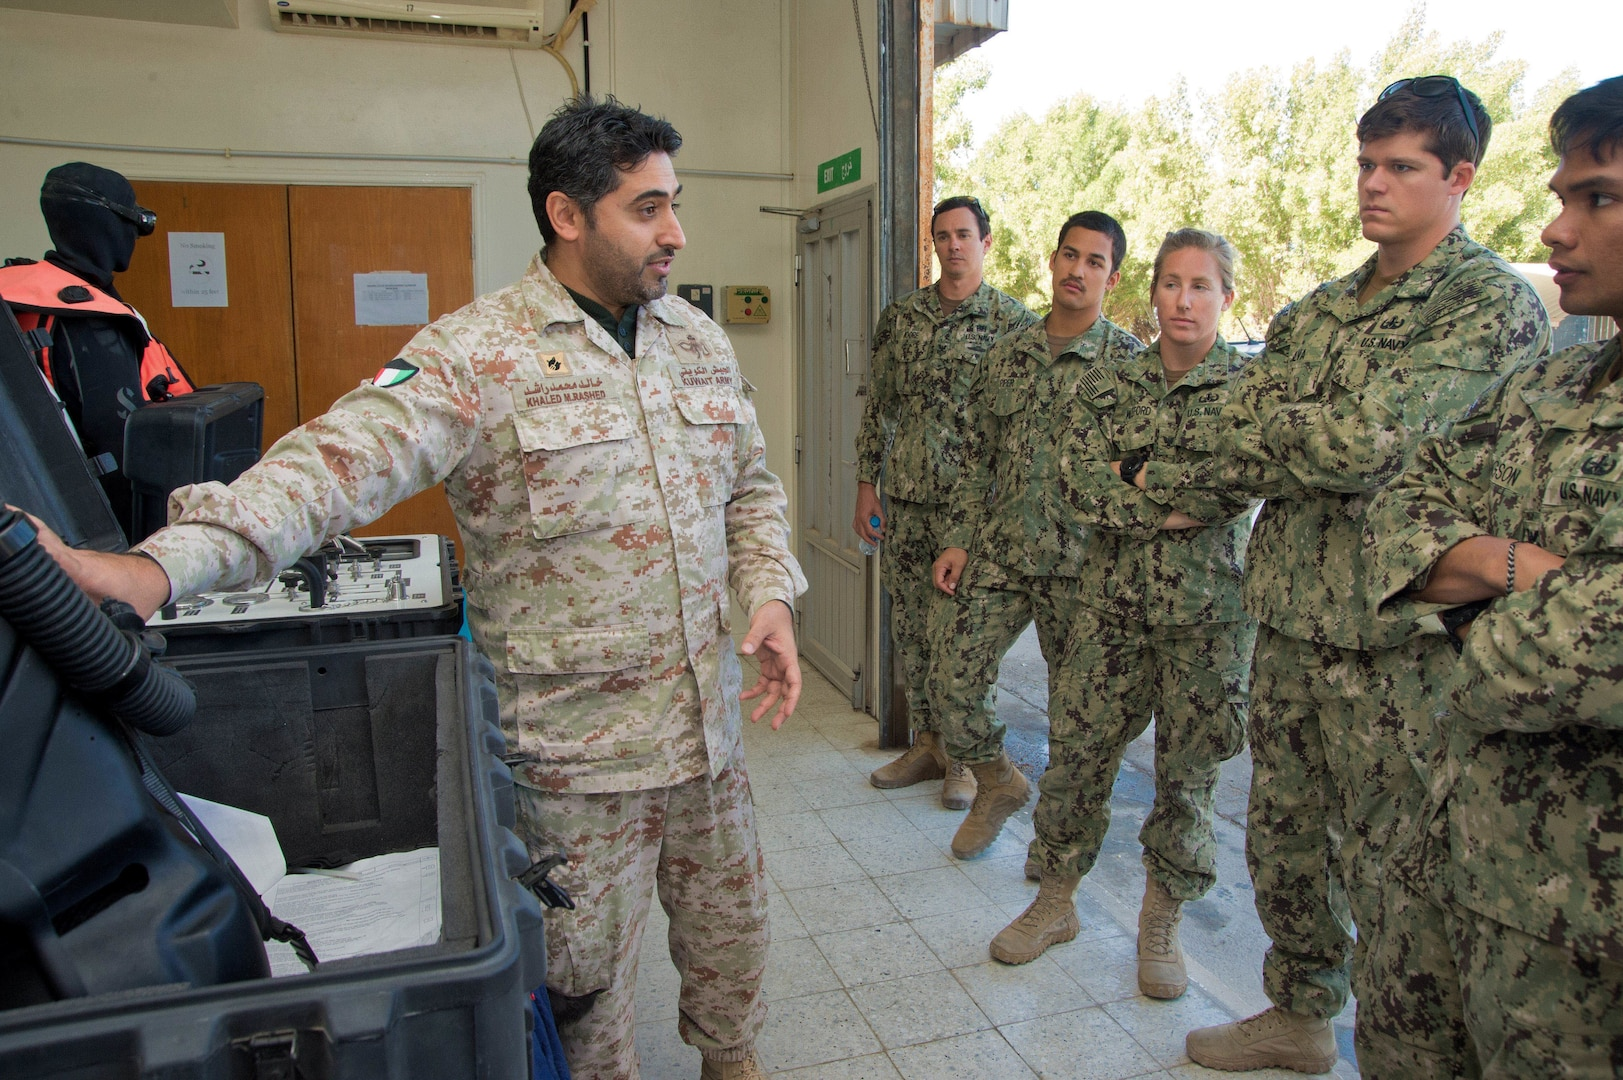 180107-N-XE158-0094 Mohammed Al-Ahmad Naval Base, KUWAIT (Jan. 7, 2018) U.S. Navy explosive ordnance disposal technicians, assigned to Commander, Task Group 56.1, and Kuwait Naval Force explosive ordnance disposal technicians participate in complete range autonomous breathing equipment training as part of exercise Eager Response 18. Eager Response 18 is a bilateral explosive ordnance disposal military exercise between the State of Kuwait and the United States. The exercise fortifies military-to-military relationships between the Kuwait Naval Force and U.S. Navy, advances the operational capabilities of Kuwaiti and U.S. forces to operate in the maritime domain, and enhances interoperability and warfighting readiness. (U.S. Navy photo by Mass Communication Specialist 1st Class Louis Rojas/Released)